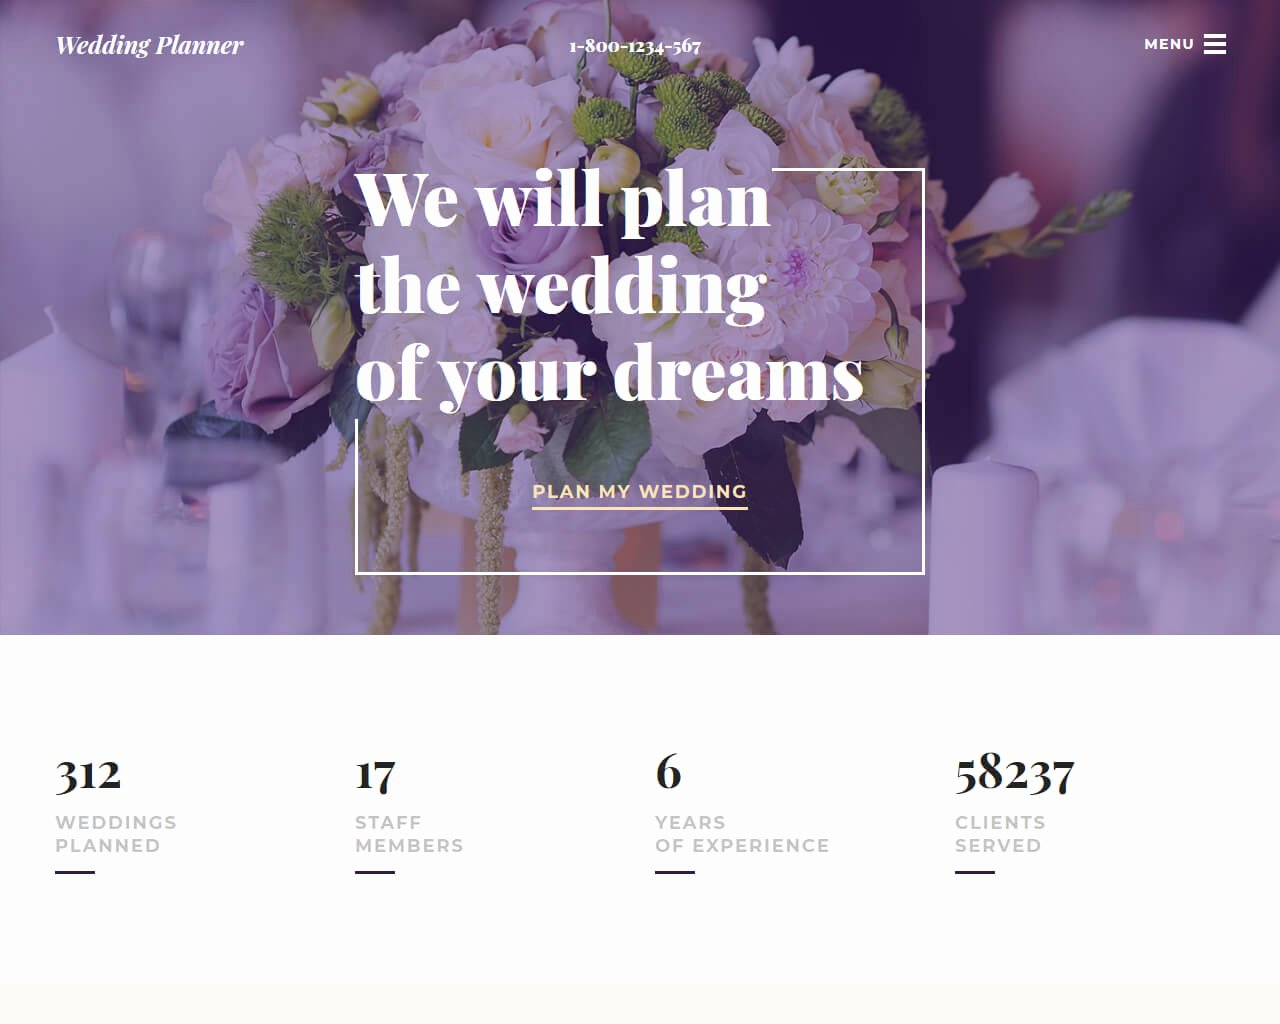 Wedding Planner Website Template New 20 Best Wedding Website Templates for Your Special Day 2018